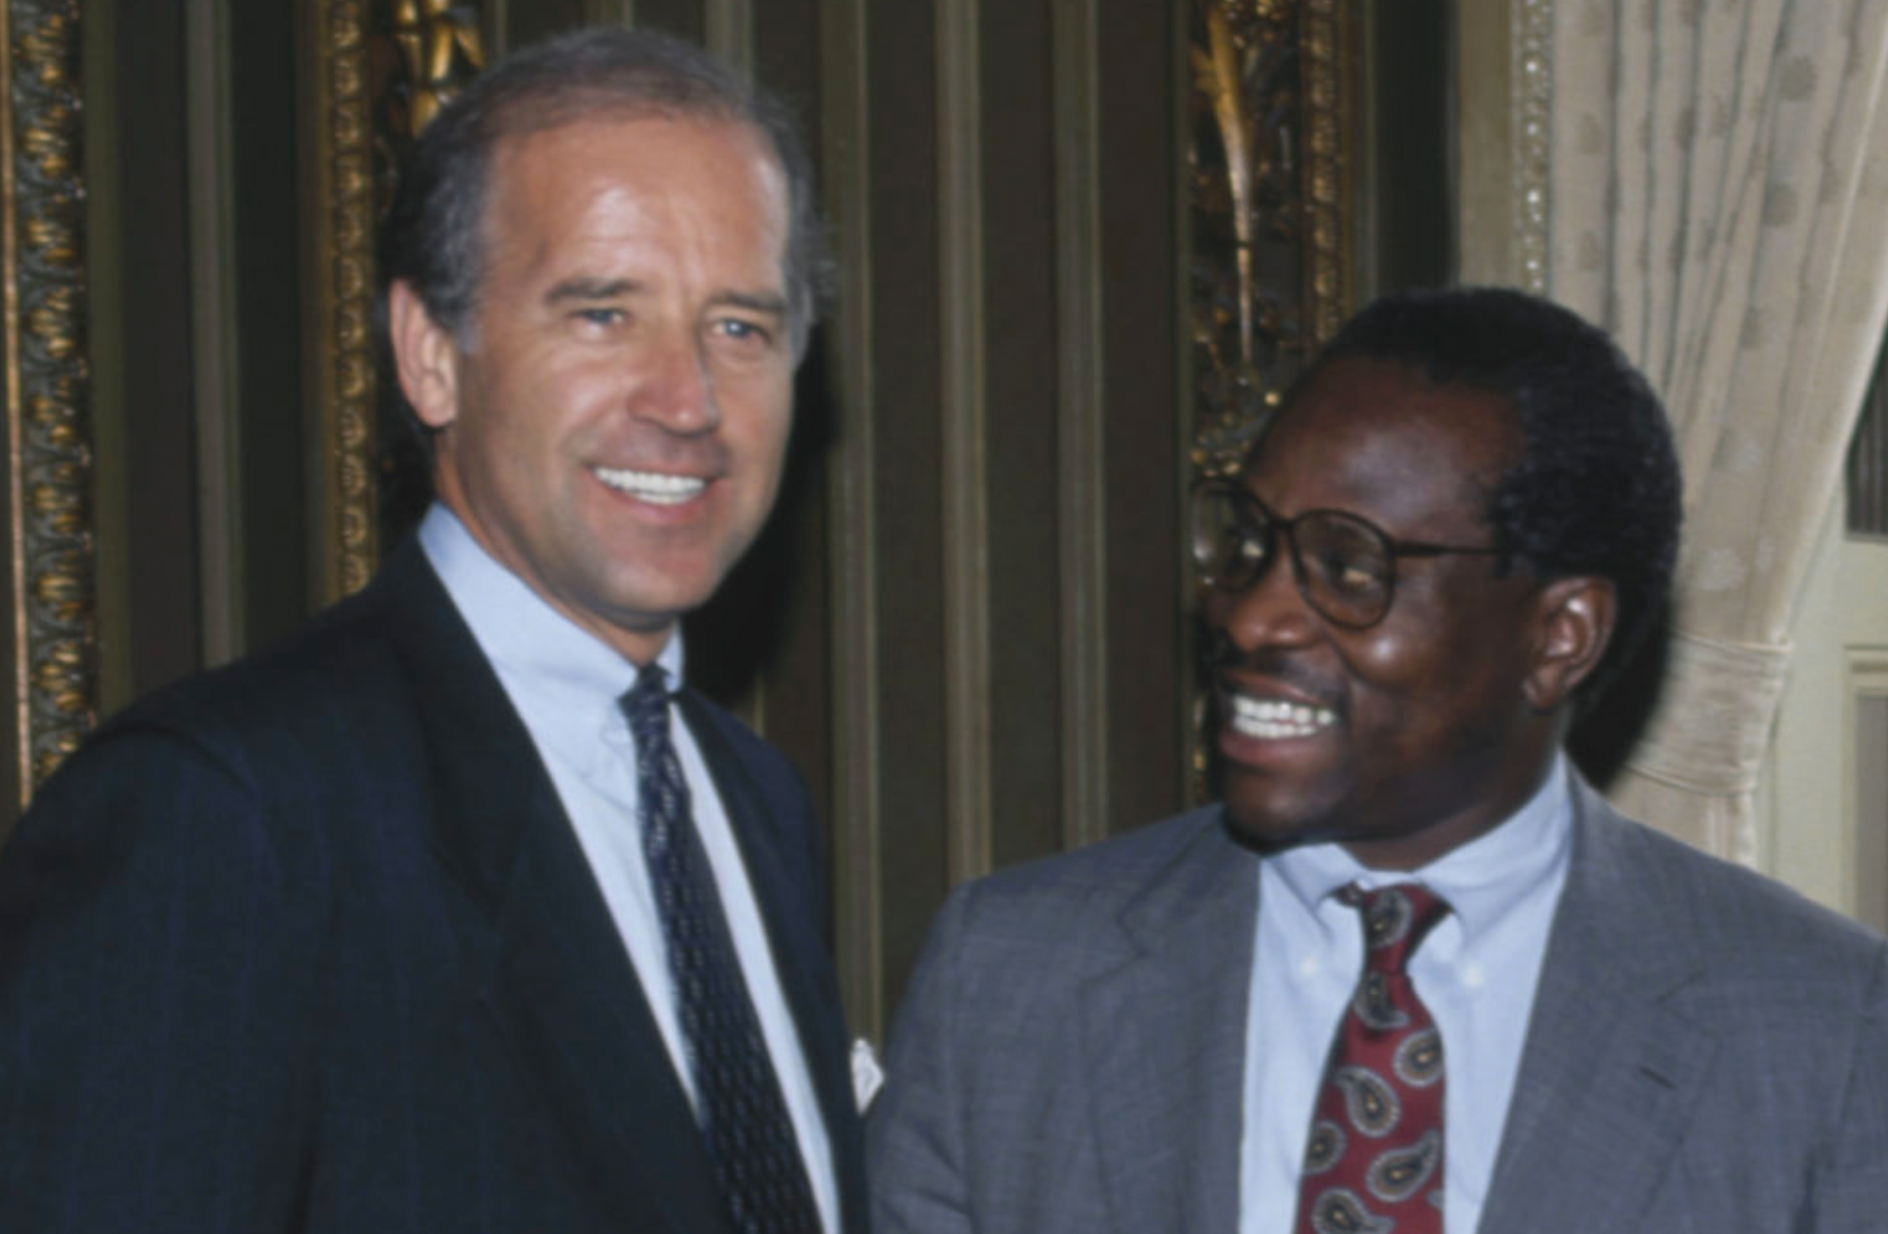 Biden poses with then-Supreme Court nominee Clarence Thomas (1991)